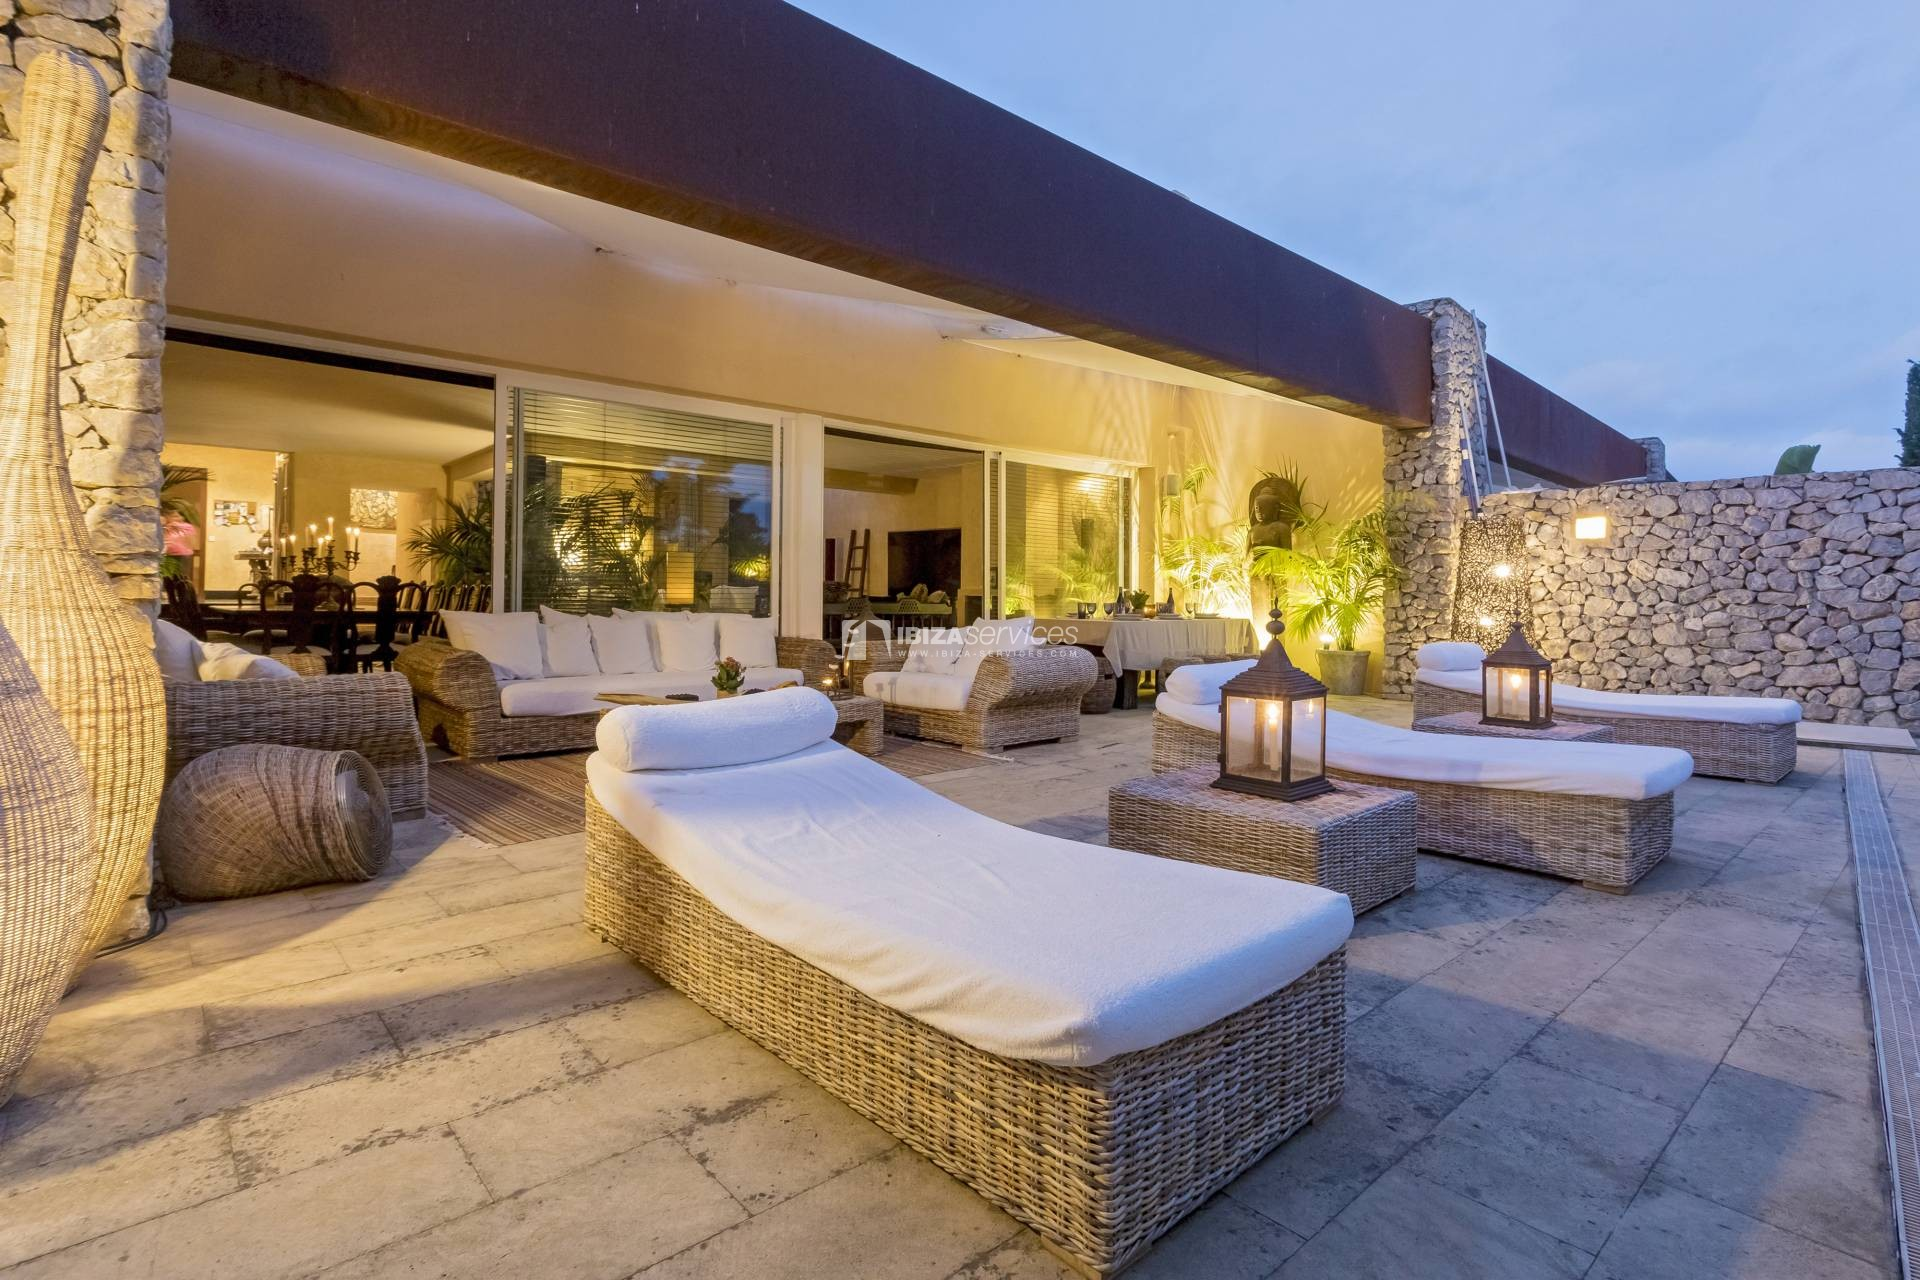 Bali style villa for sale Roca Llisa perspectiva 1